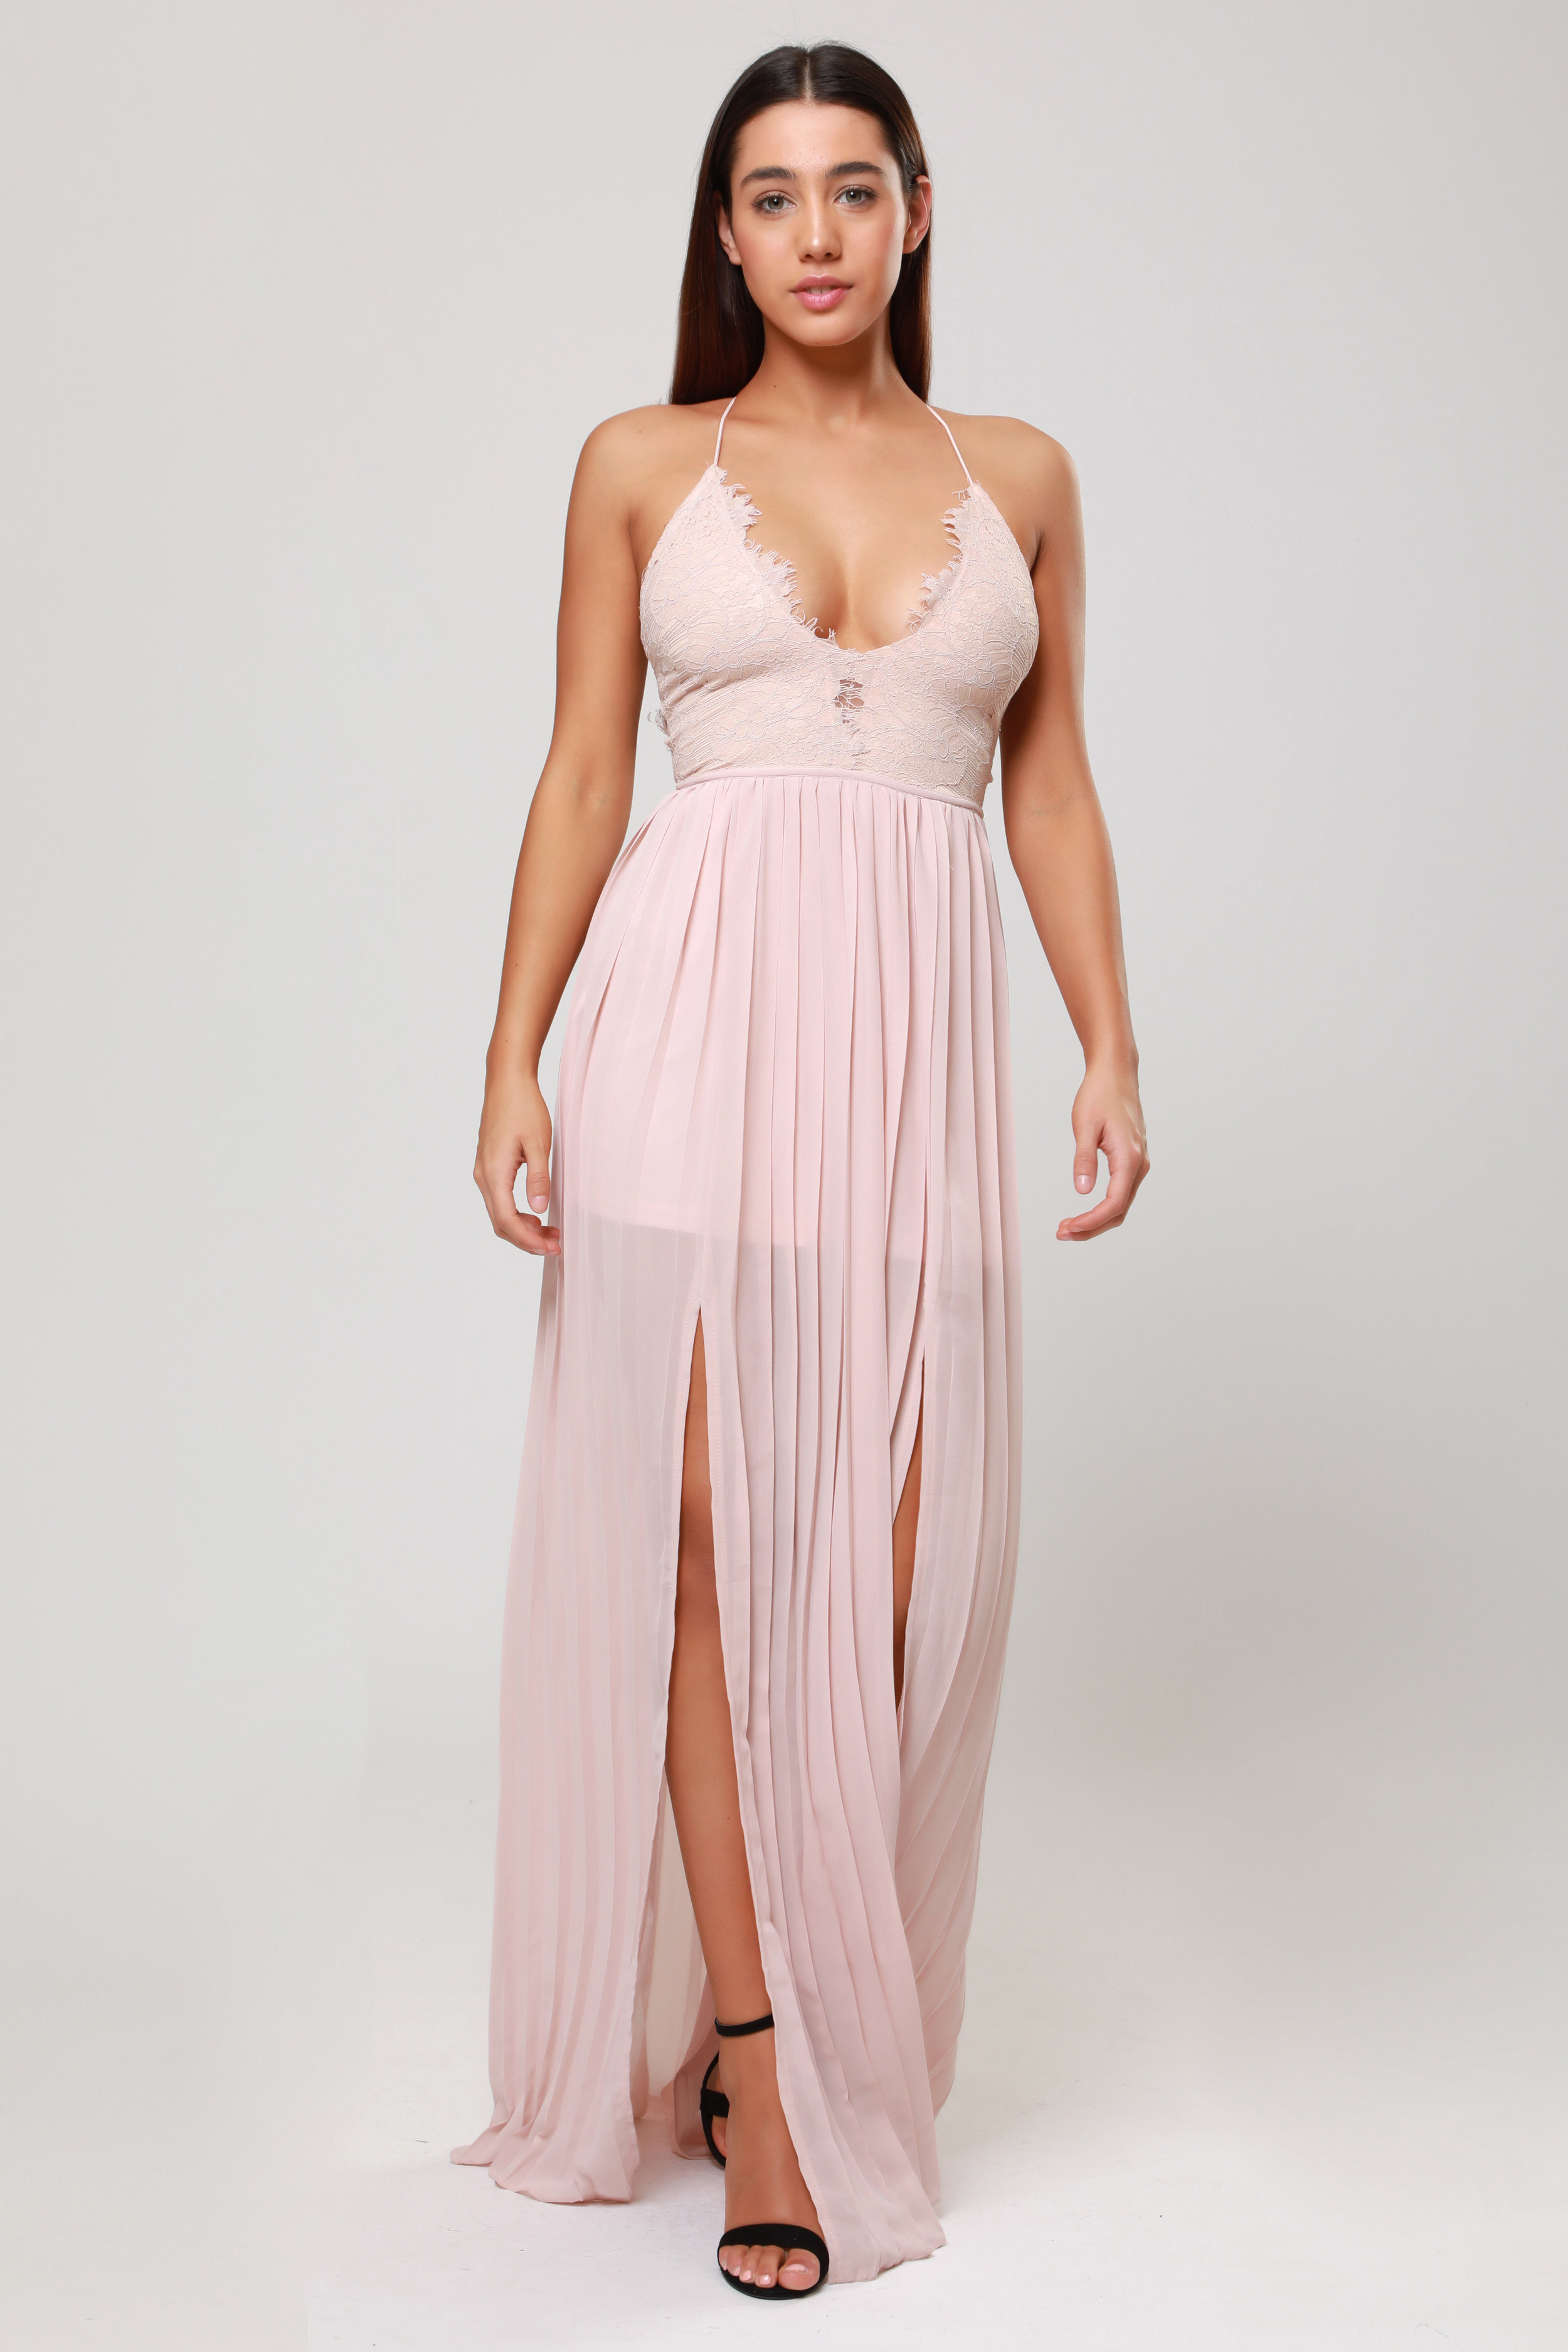 Maxi Dress with  Cup Detail   £70.00